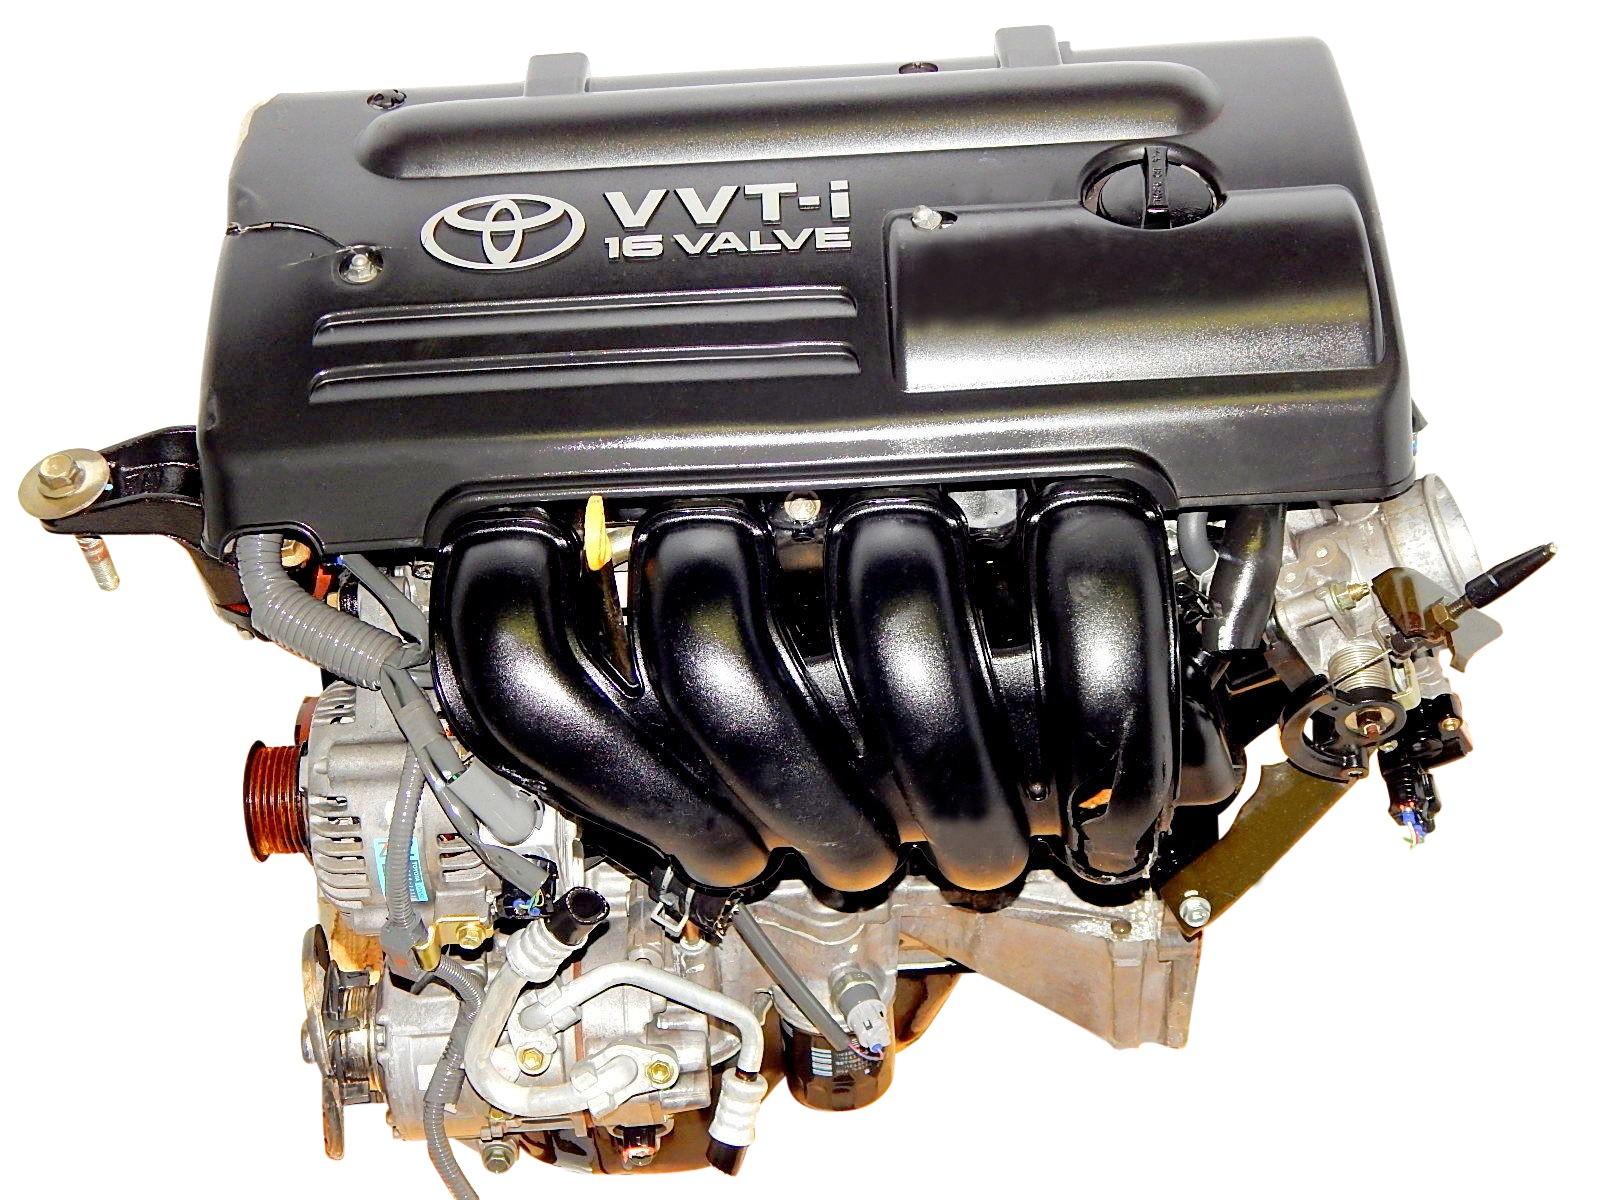 wrg 8765] 2002 toyota celica engine diagram Supra Engine Diagram